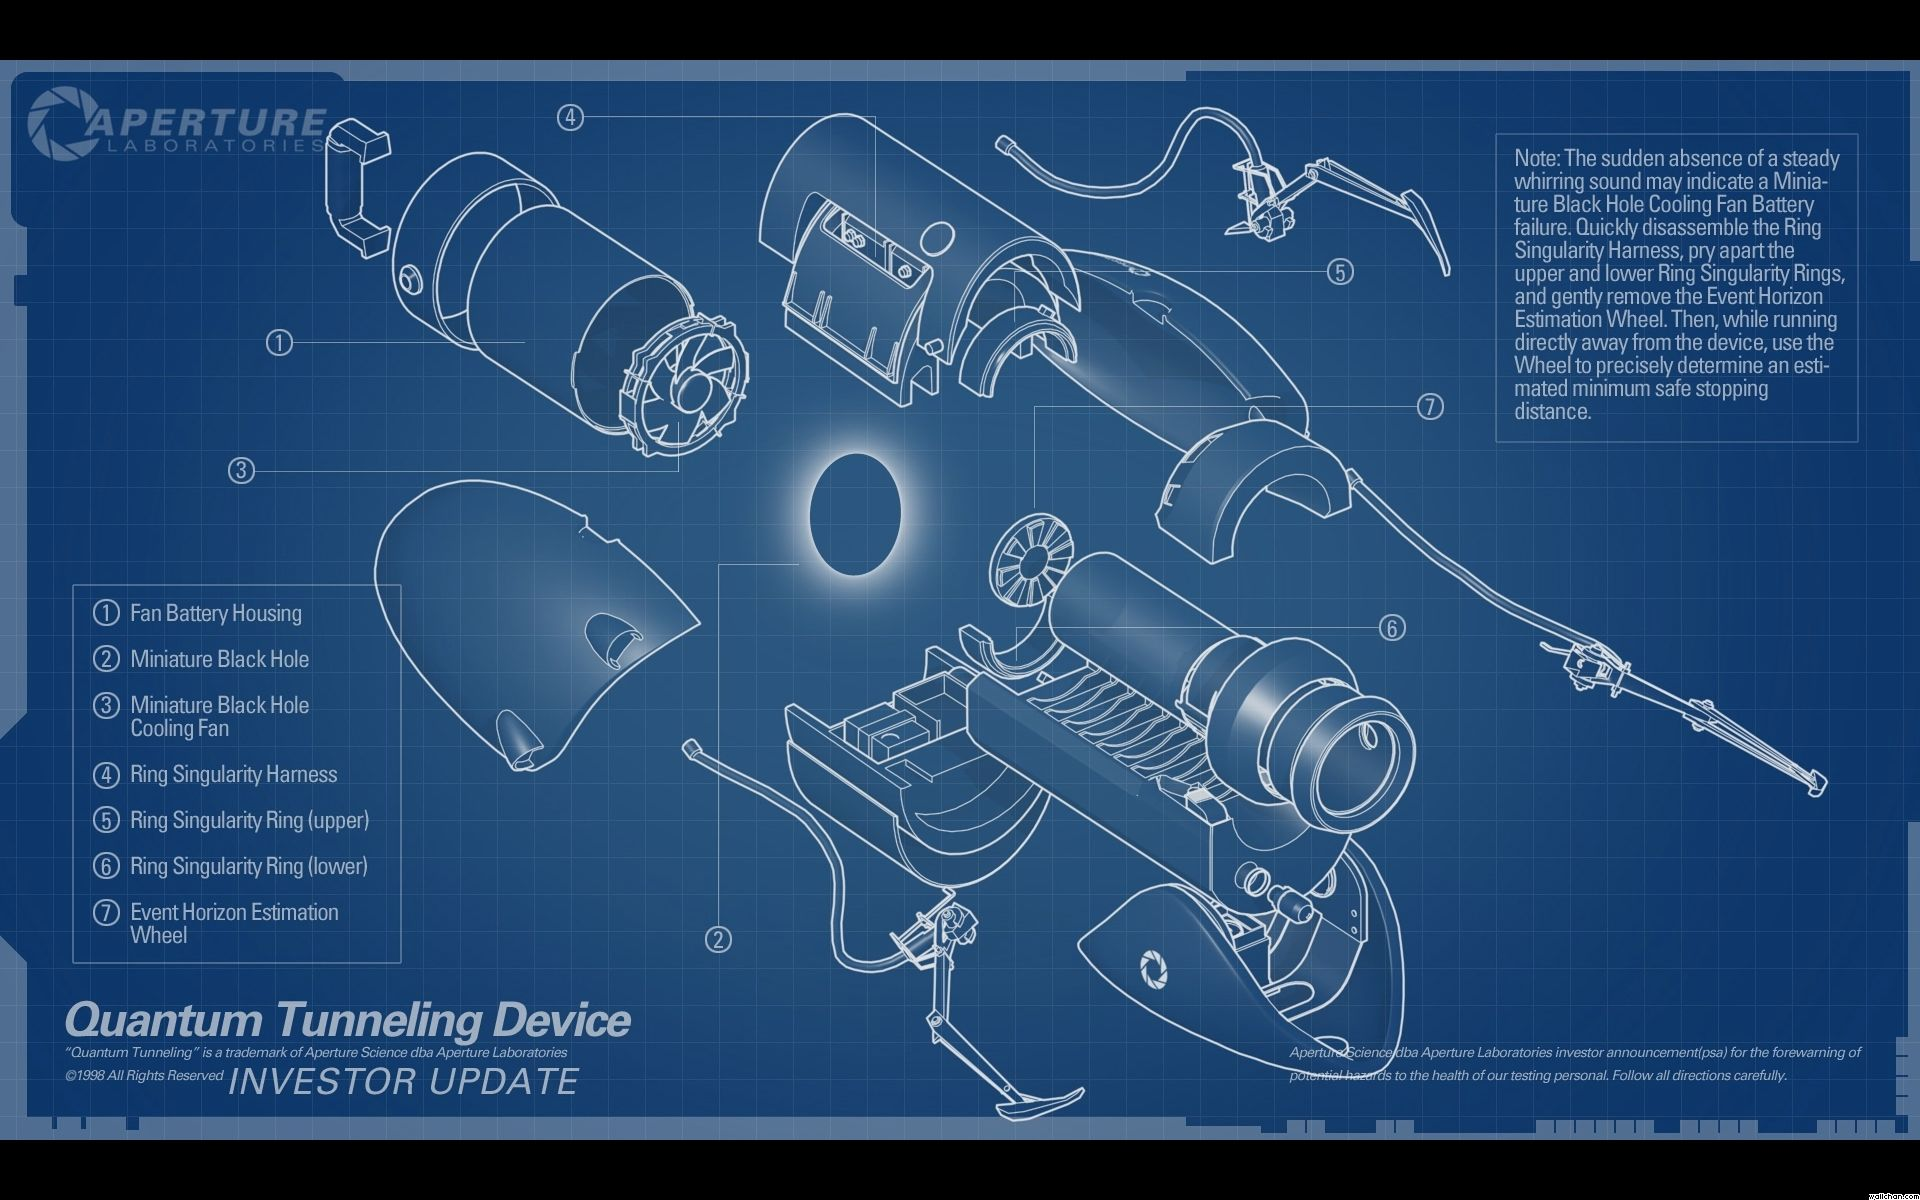 Portal gun schematics nerdy things pinterest portal guns portal gun blueprints wallpaper jpg x desktop wallpaper 230852 malvernweather Gallery